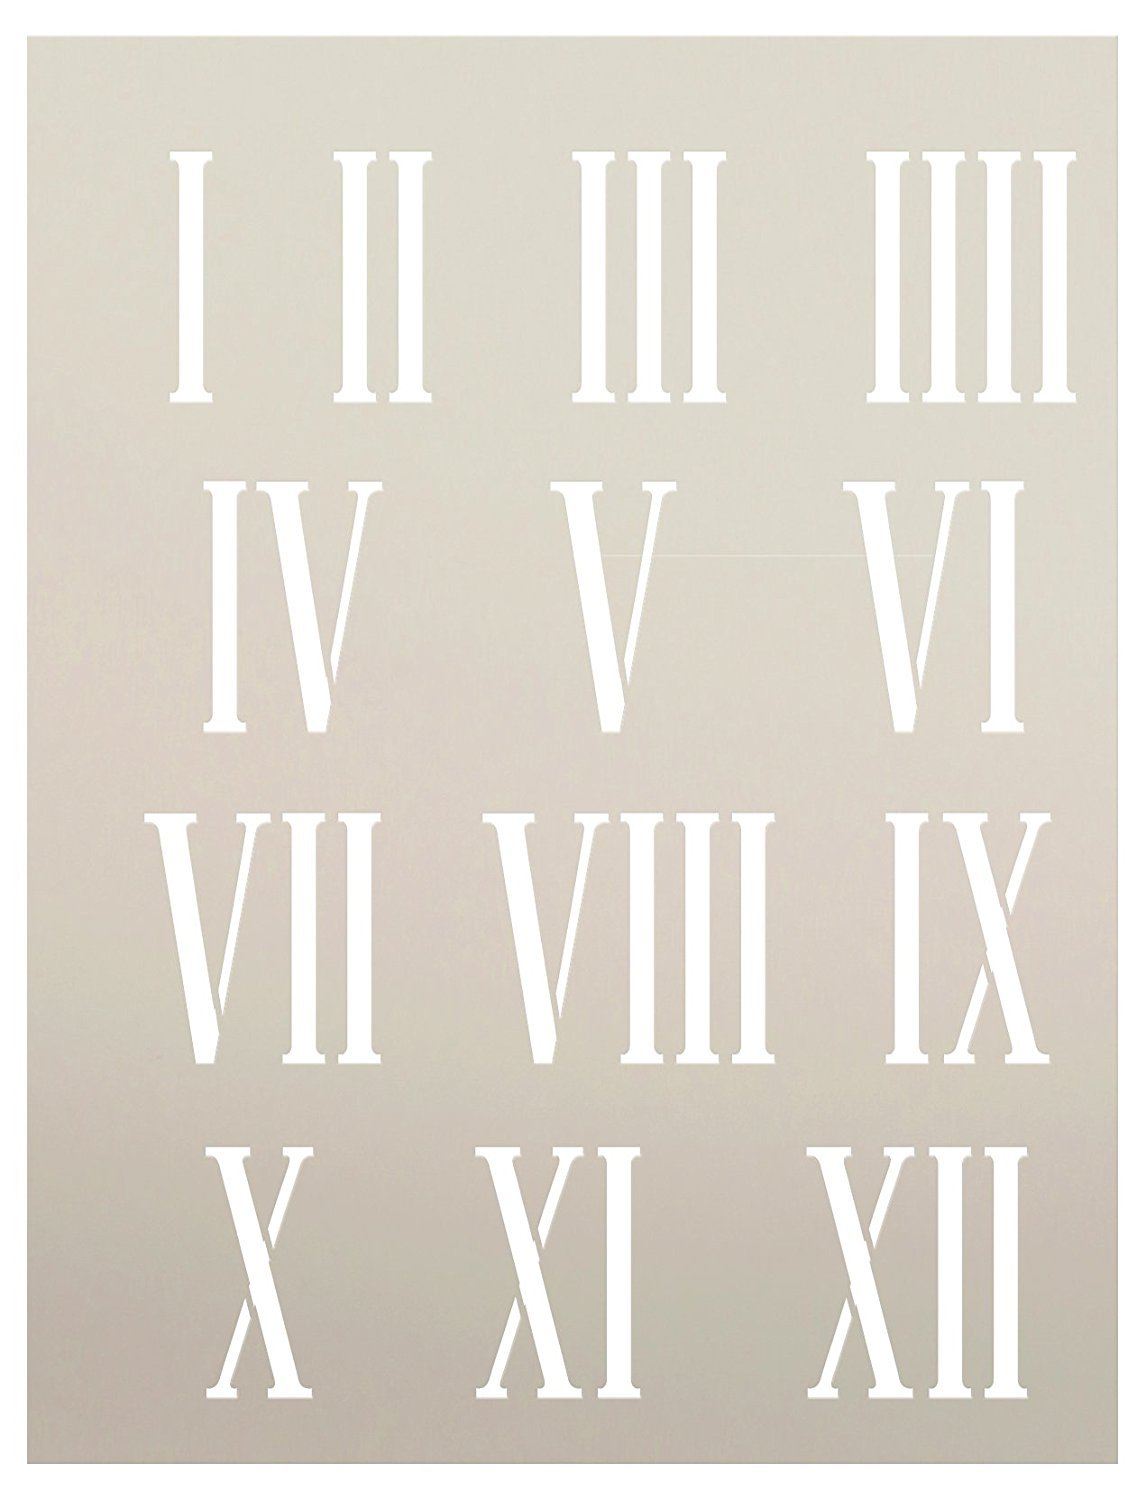 "Clock Numerals Stencil by StudioR12 | Roman Numbers Elements - Reusable Mylar Template | Painting, Chalk, Mixed Media | Use for Journaling, DIY Home Decor - STCL185 - SELECT SIZE (6.5"" x 6"")"